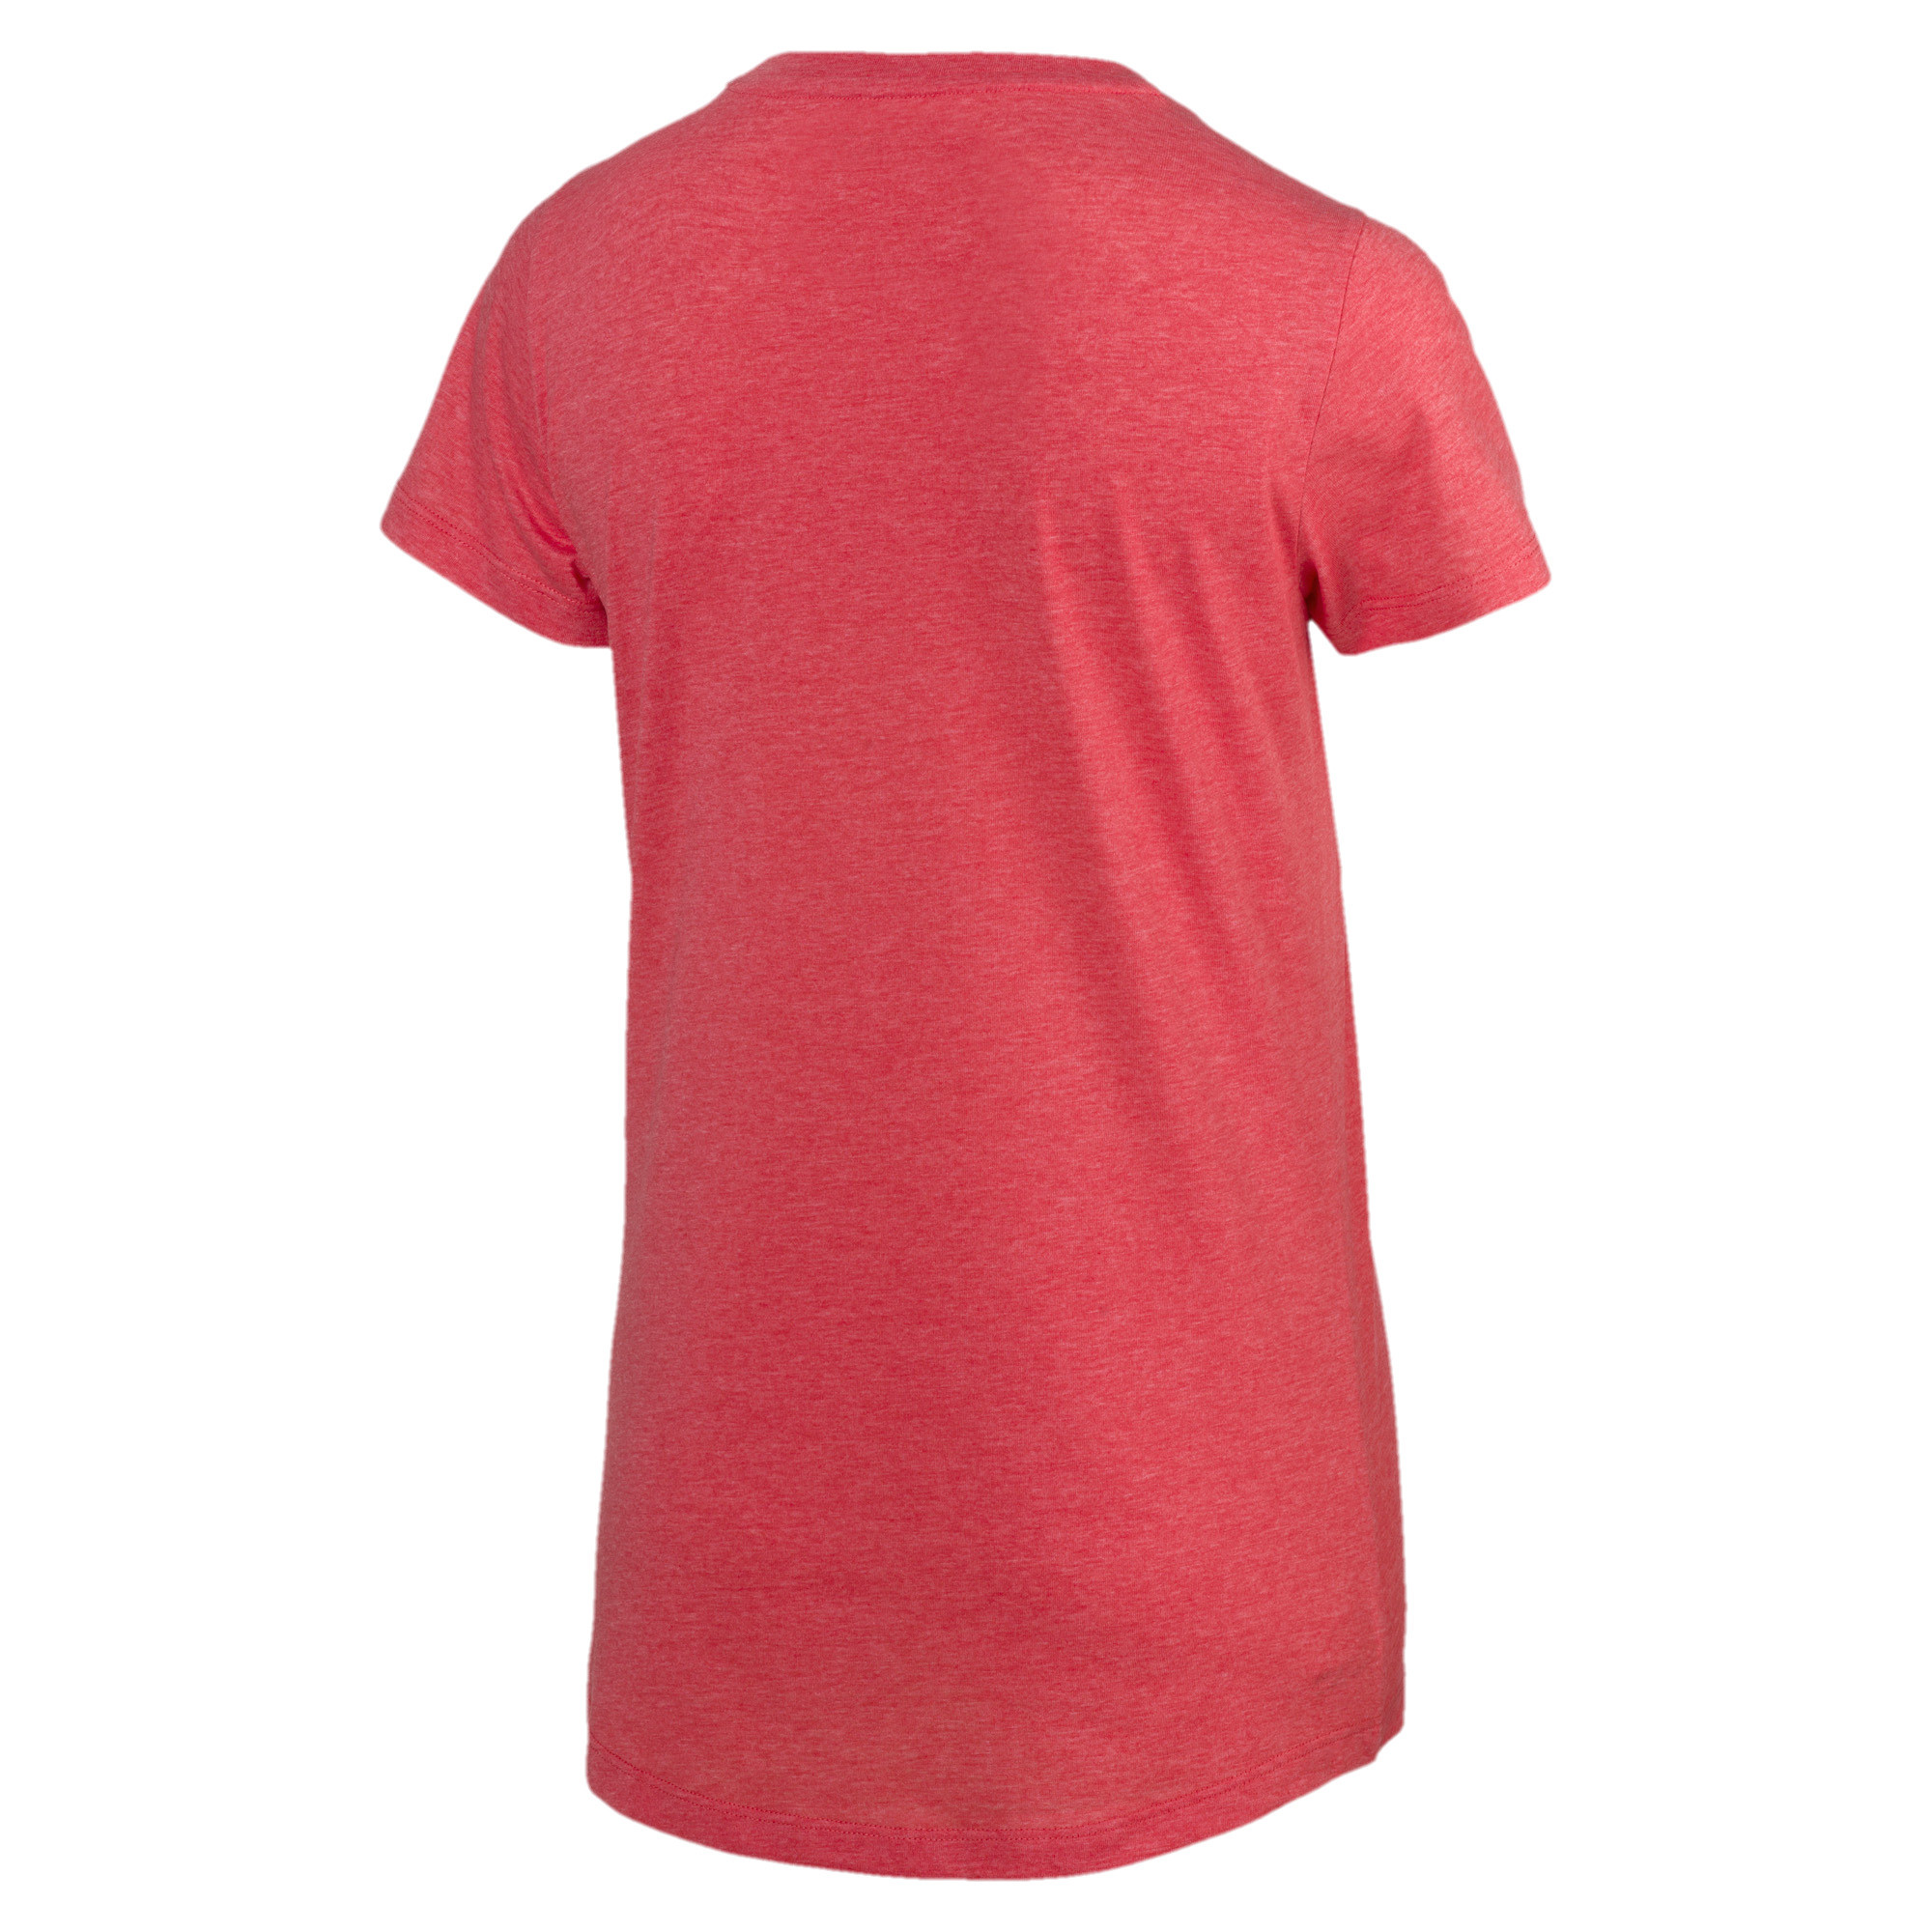 PUMA-Essentials-Women-039-s-Heather-Tee-Women-Tee-Basics thumbnail 41